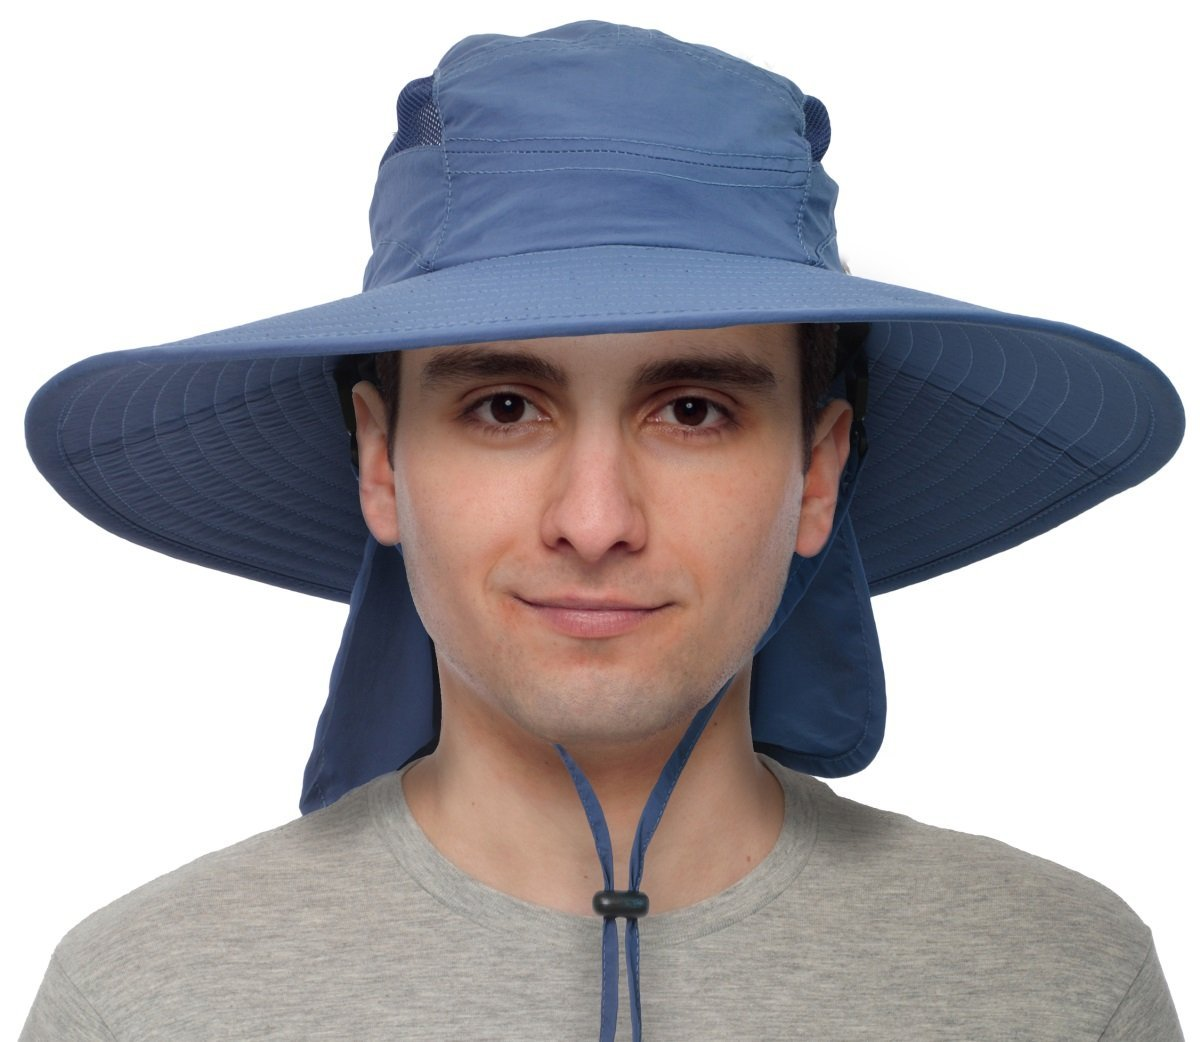 ac389d3b5111c Get Quotations · Solaris Fishing Cap UV Sun Protection Wide Brim Hat with  Removable Bill Neck Flap for Men